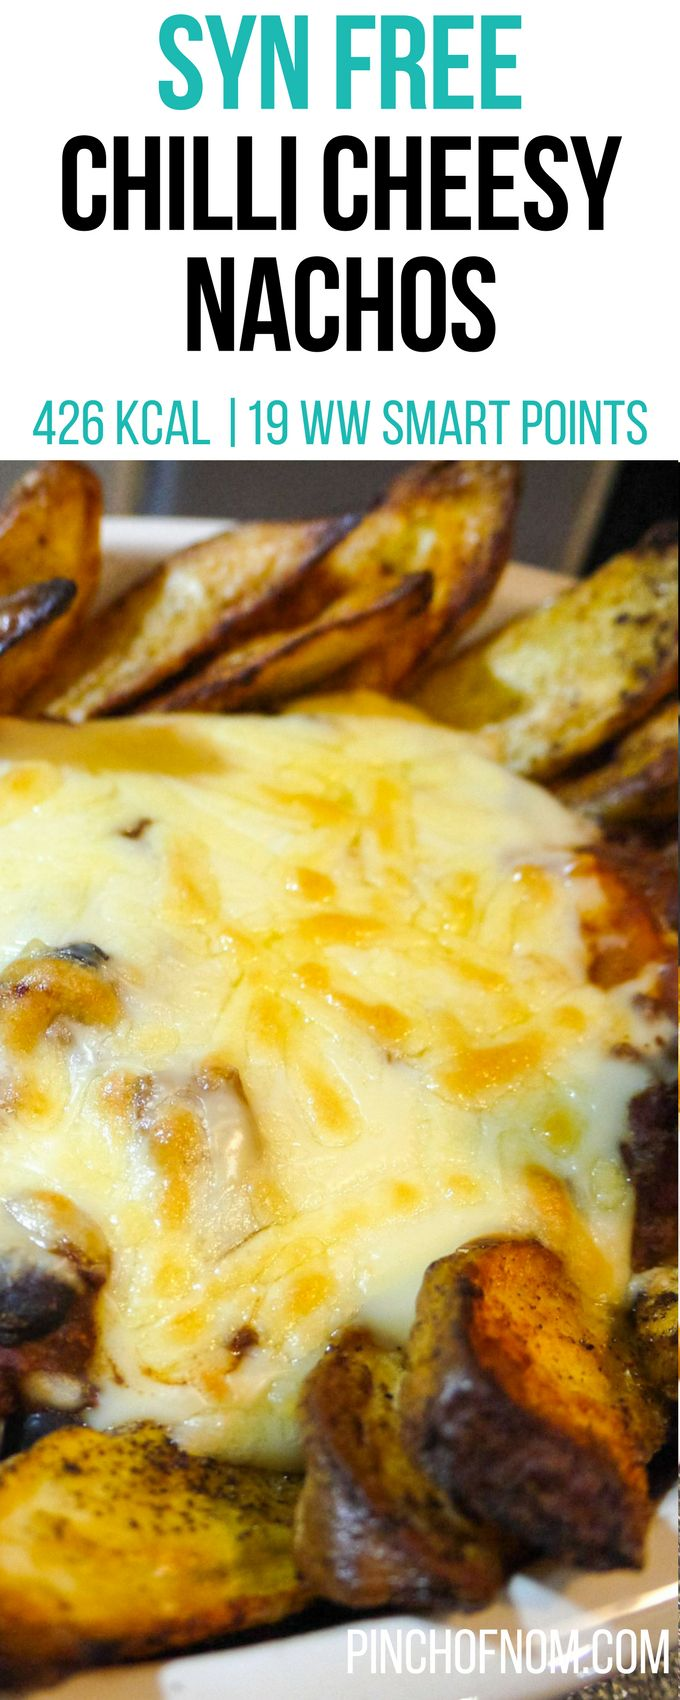 Replace the beef with Quoen mince and the beef stock with veg...  Syn Free Chilli Cheesy Nachos | Pinch Of Nom Slimming World Recipes    426 kcal | Syn Free | 19 Weight Watchers Smart Points